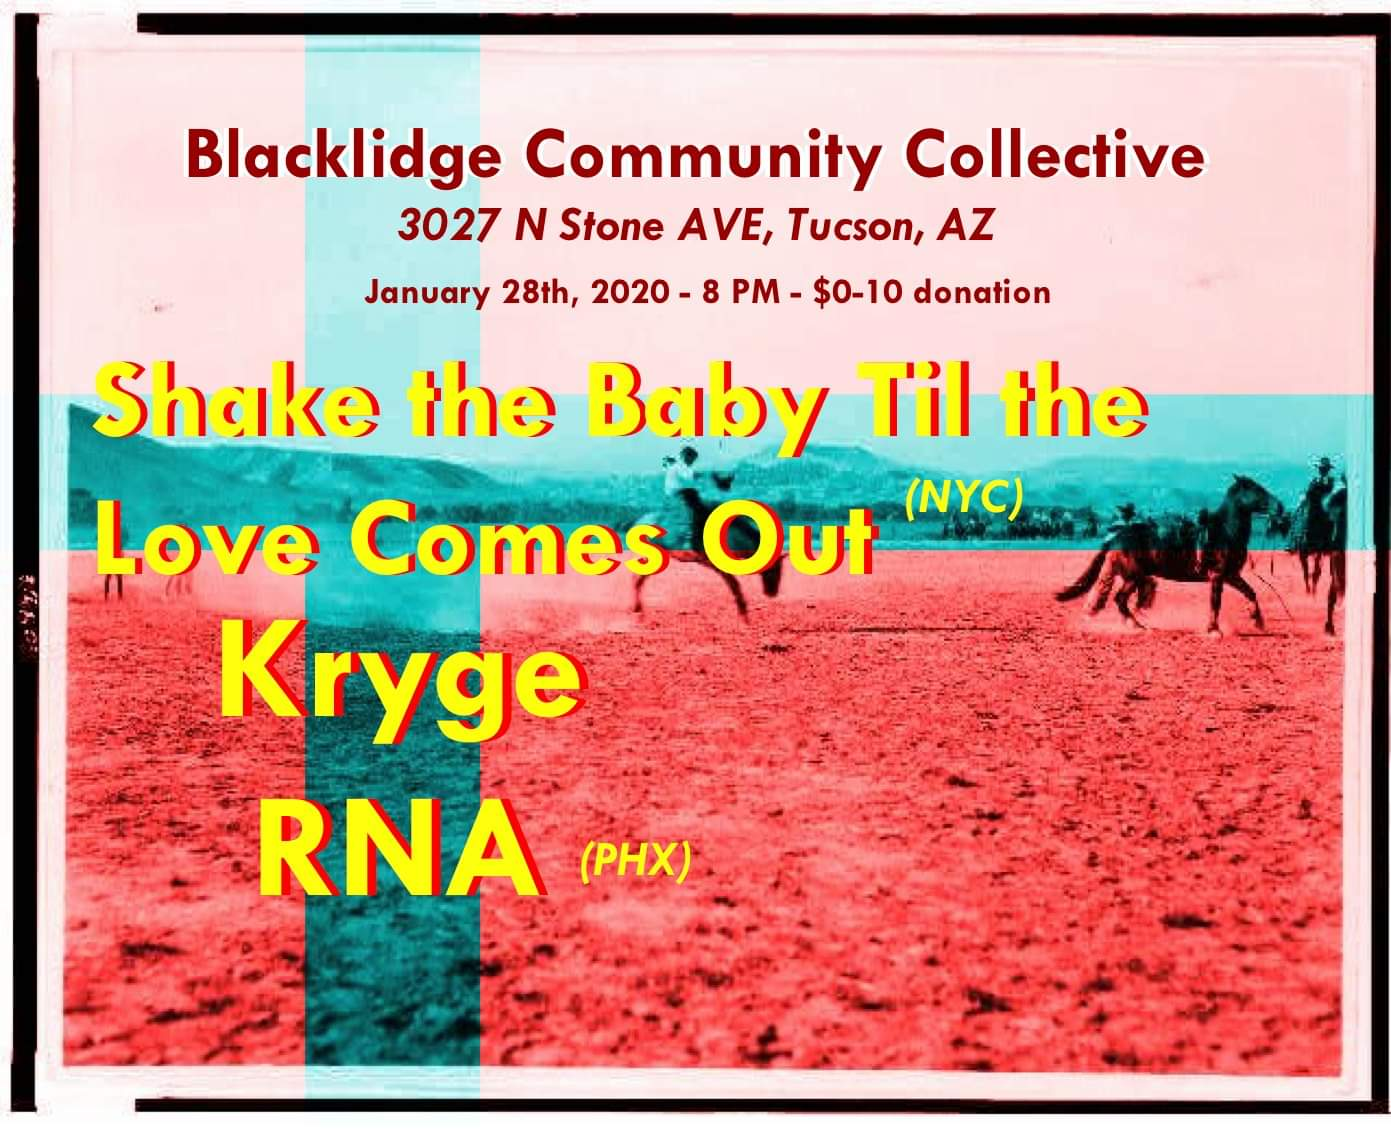 Shake the Baby Till the Love Comes Out, Kygre and RNA